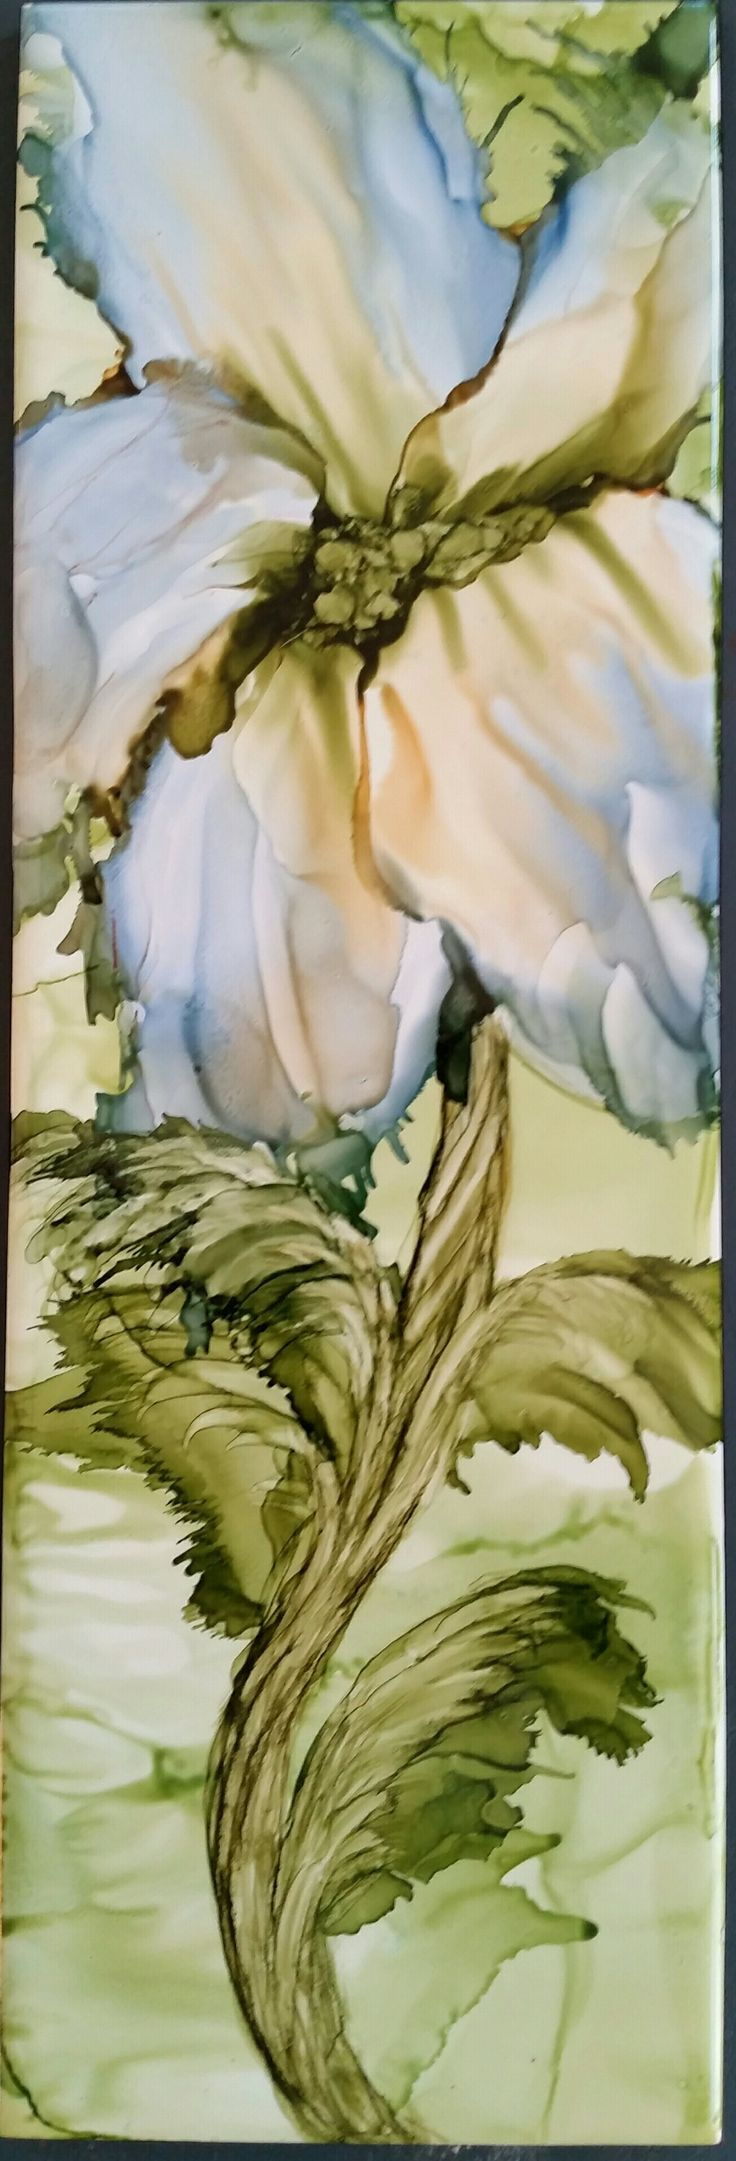 Flower in alcohol ink on long 12x4 ceramic tile by Tina